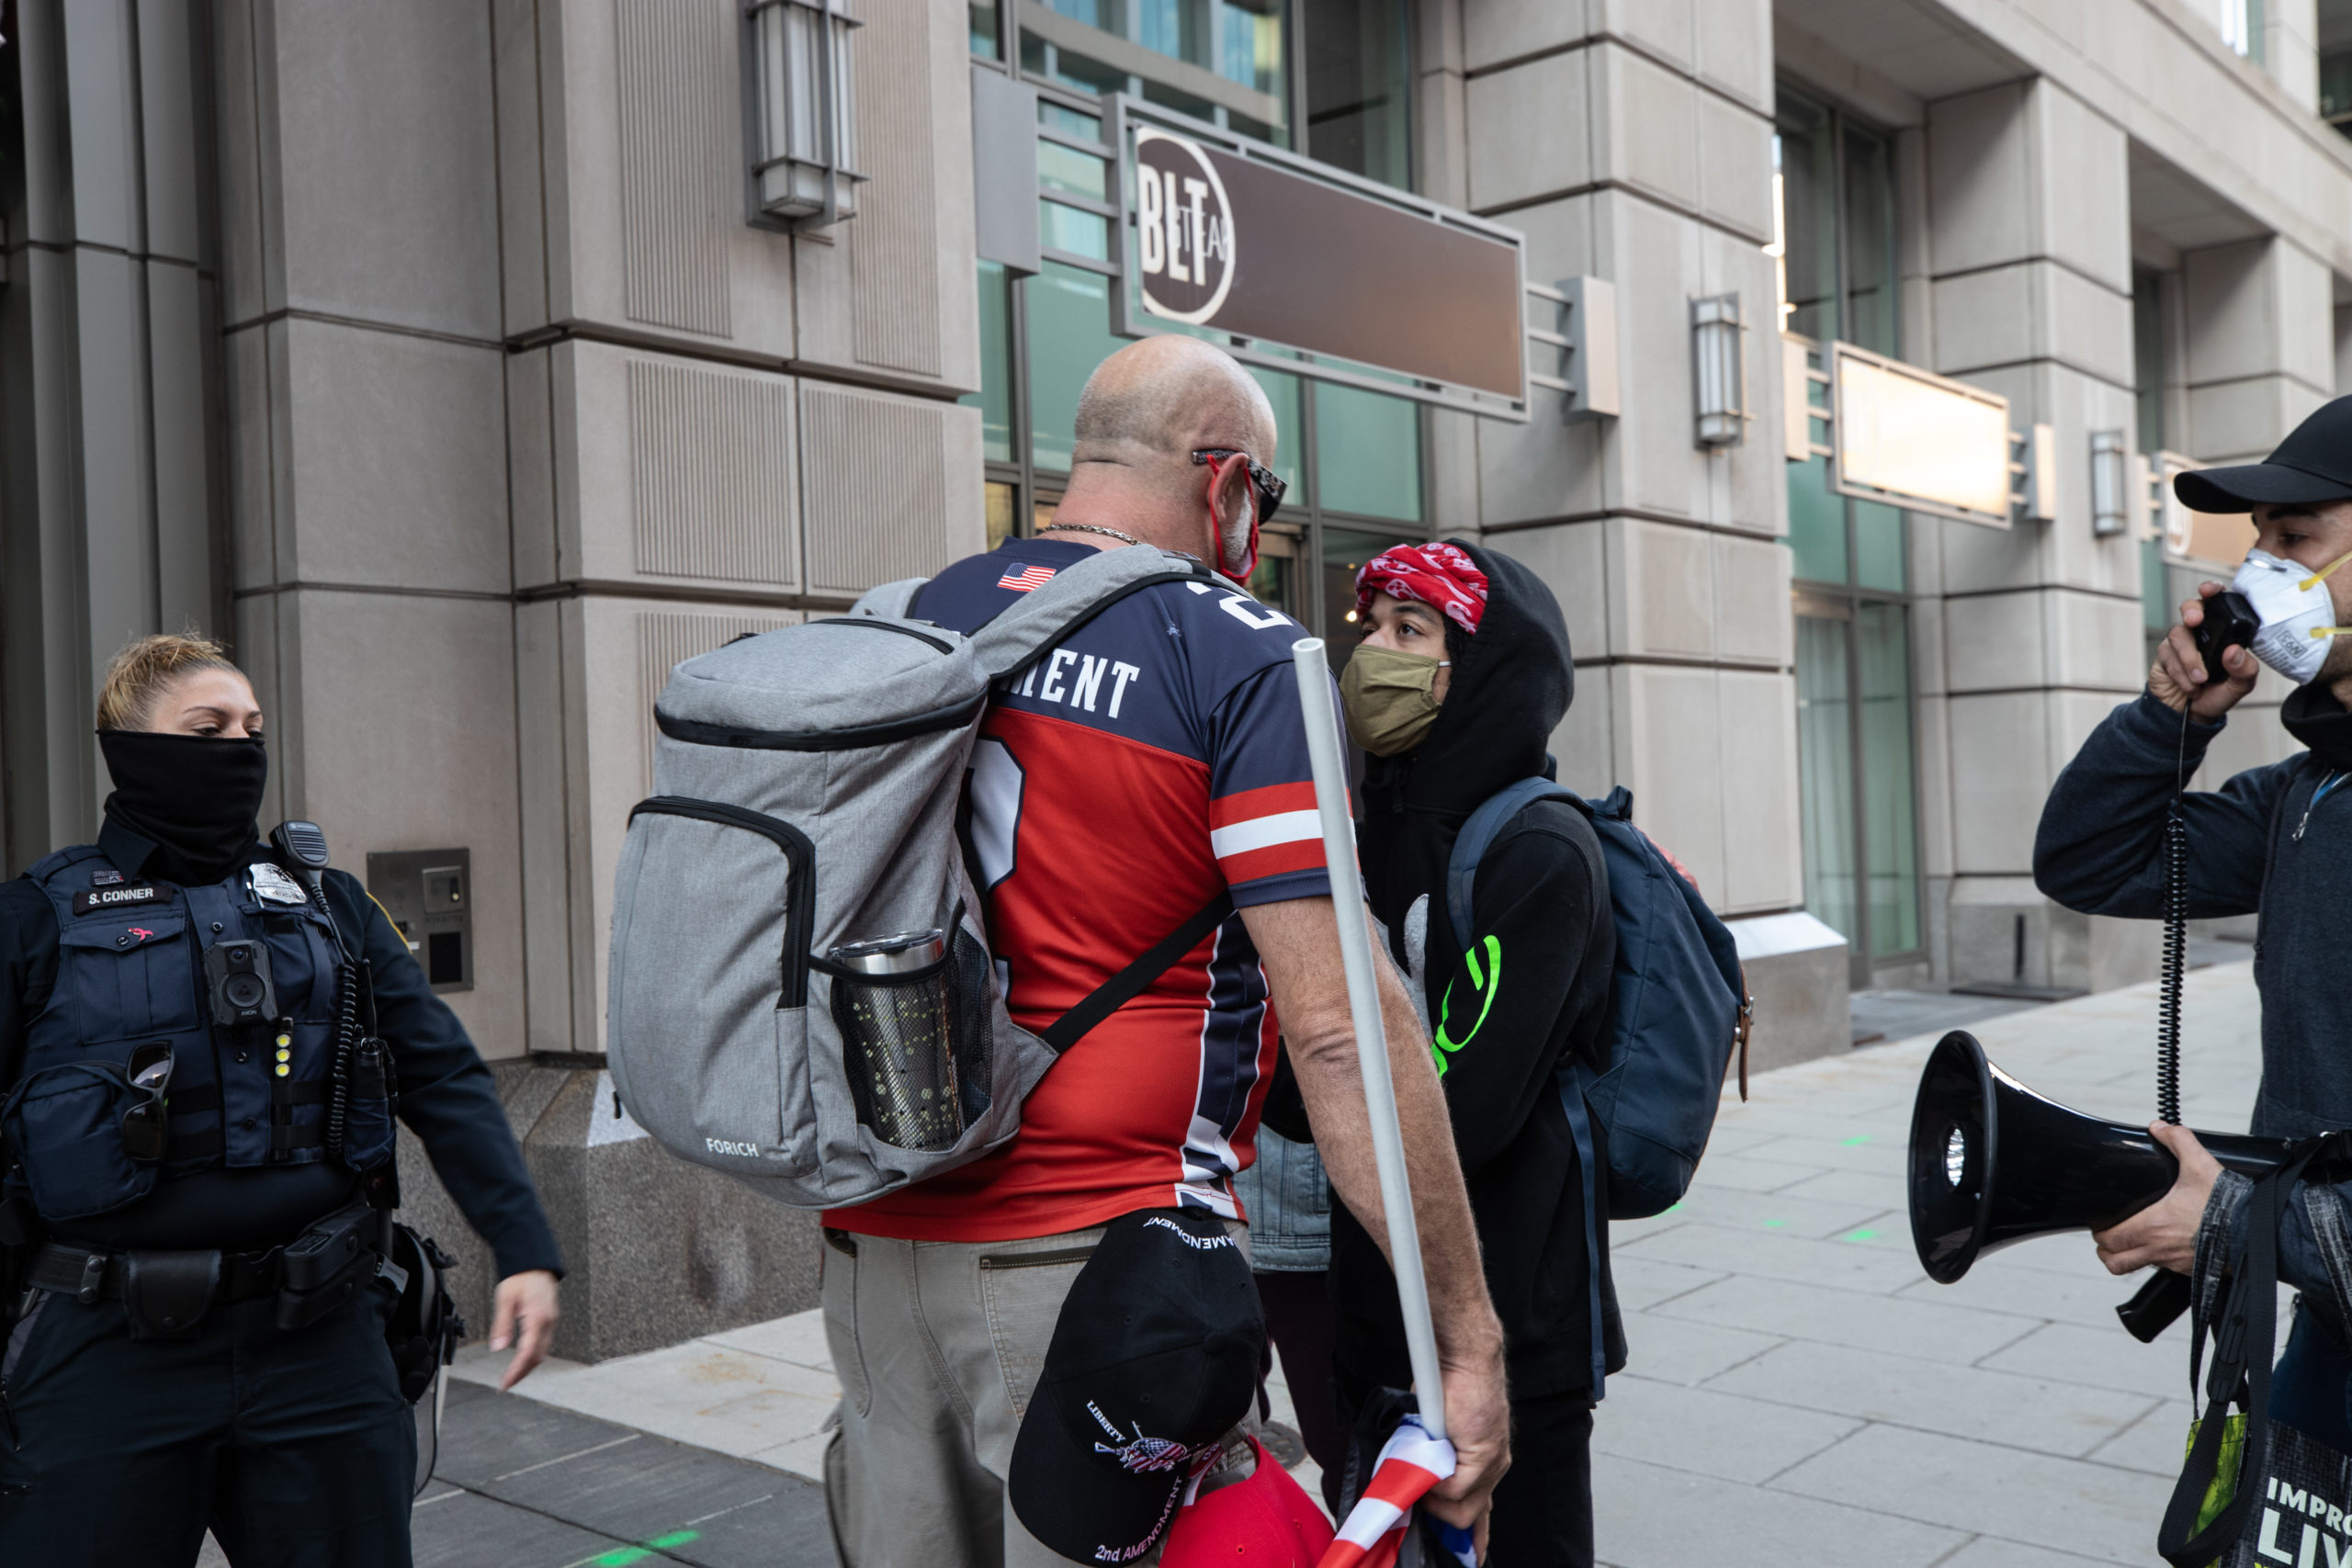 A supporter of President Donald Trump confronted a counter protester in Black Lives Matter Plaza on Dec. 12, 2020. (Photo: Kaylee Greenlee - Daily Caller News Foundation)